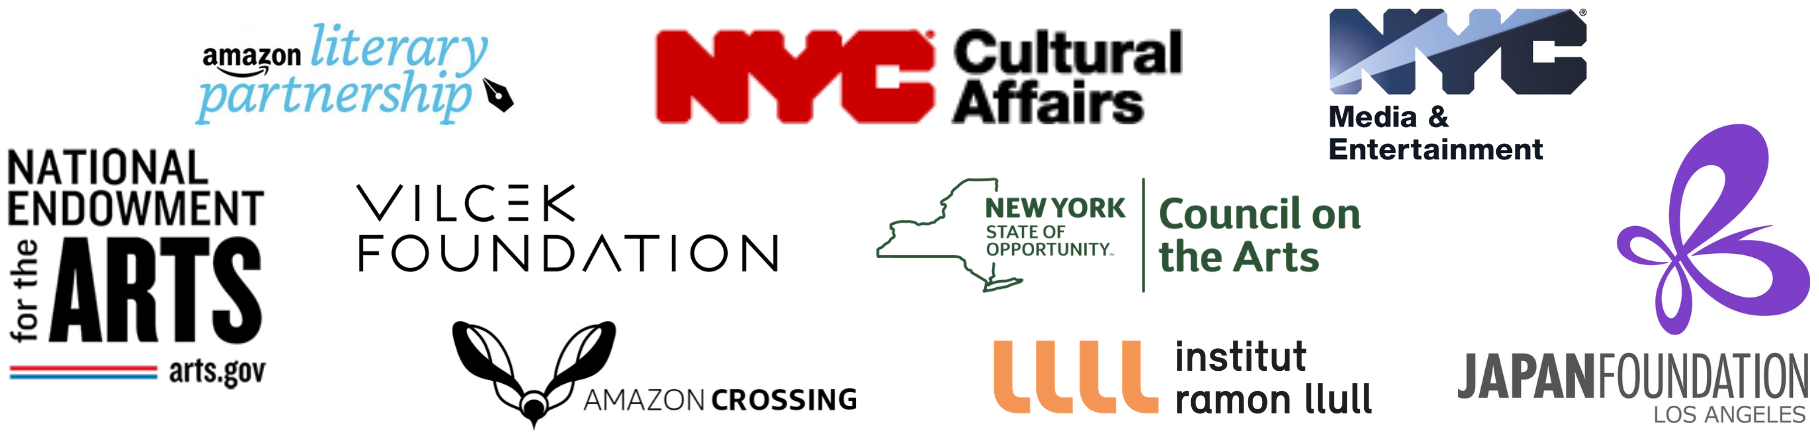 Logos of presenting sponsors: Amazon Crossing, Amazon Literary Partnership, Horace Goldsmith Foundation, Institut Ramon Llull, Japan Foundation, Los Angeles, JKW Foundation, New York City Mayor's Office of Media and Entertainment, National Endowment for the Arts, New York State Council on the Arts, New York City Department of Cultural Affairs, and Vilcek Foundation